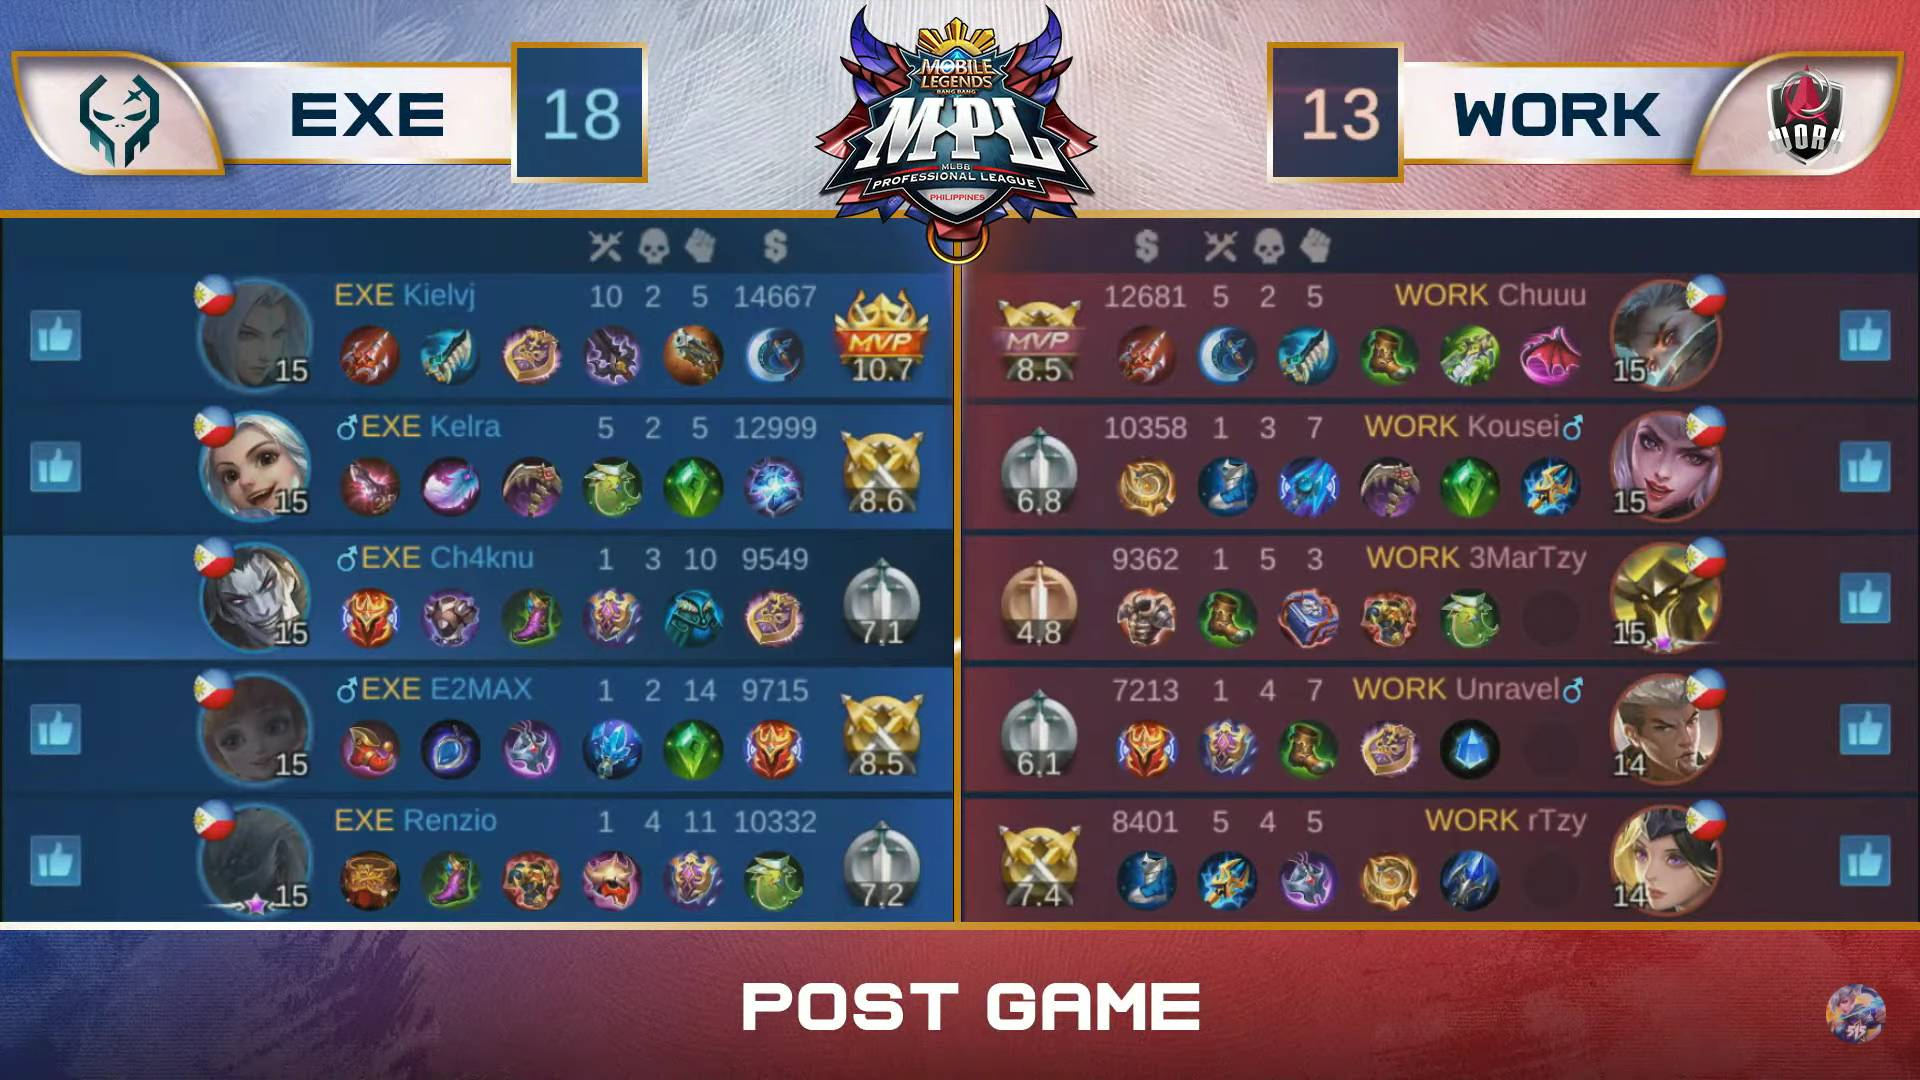 MPL-PH-Season-7-Work-Auster-def-Execration-Game-1 Work Auster pulls epic come-from-behind win vs Execration in MPL PH ESports Mobile Legends MPL-PH News  - philippine sports news